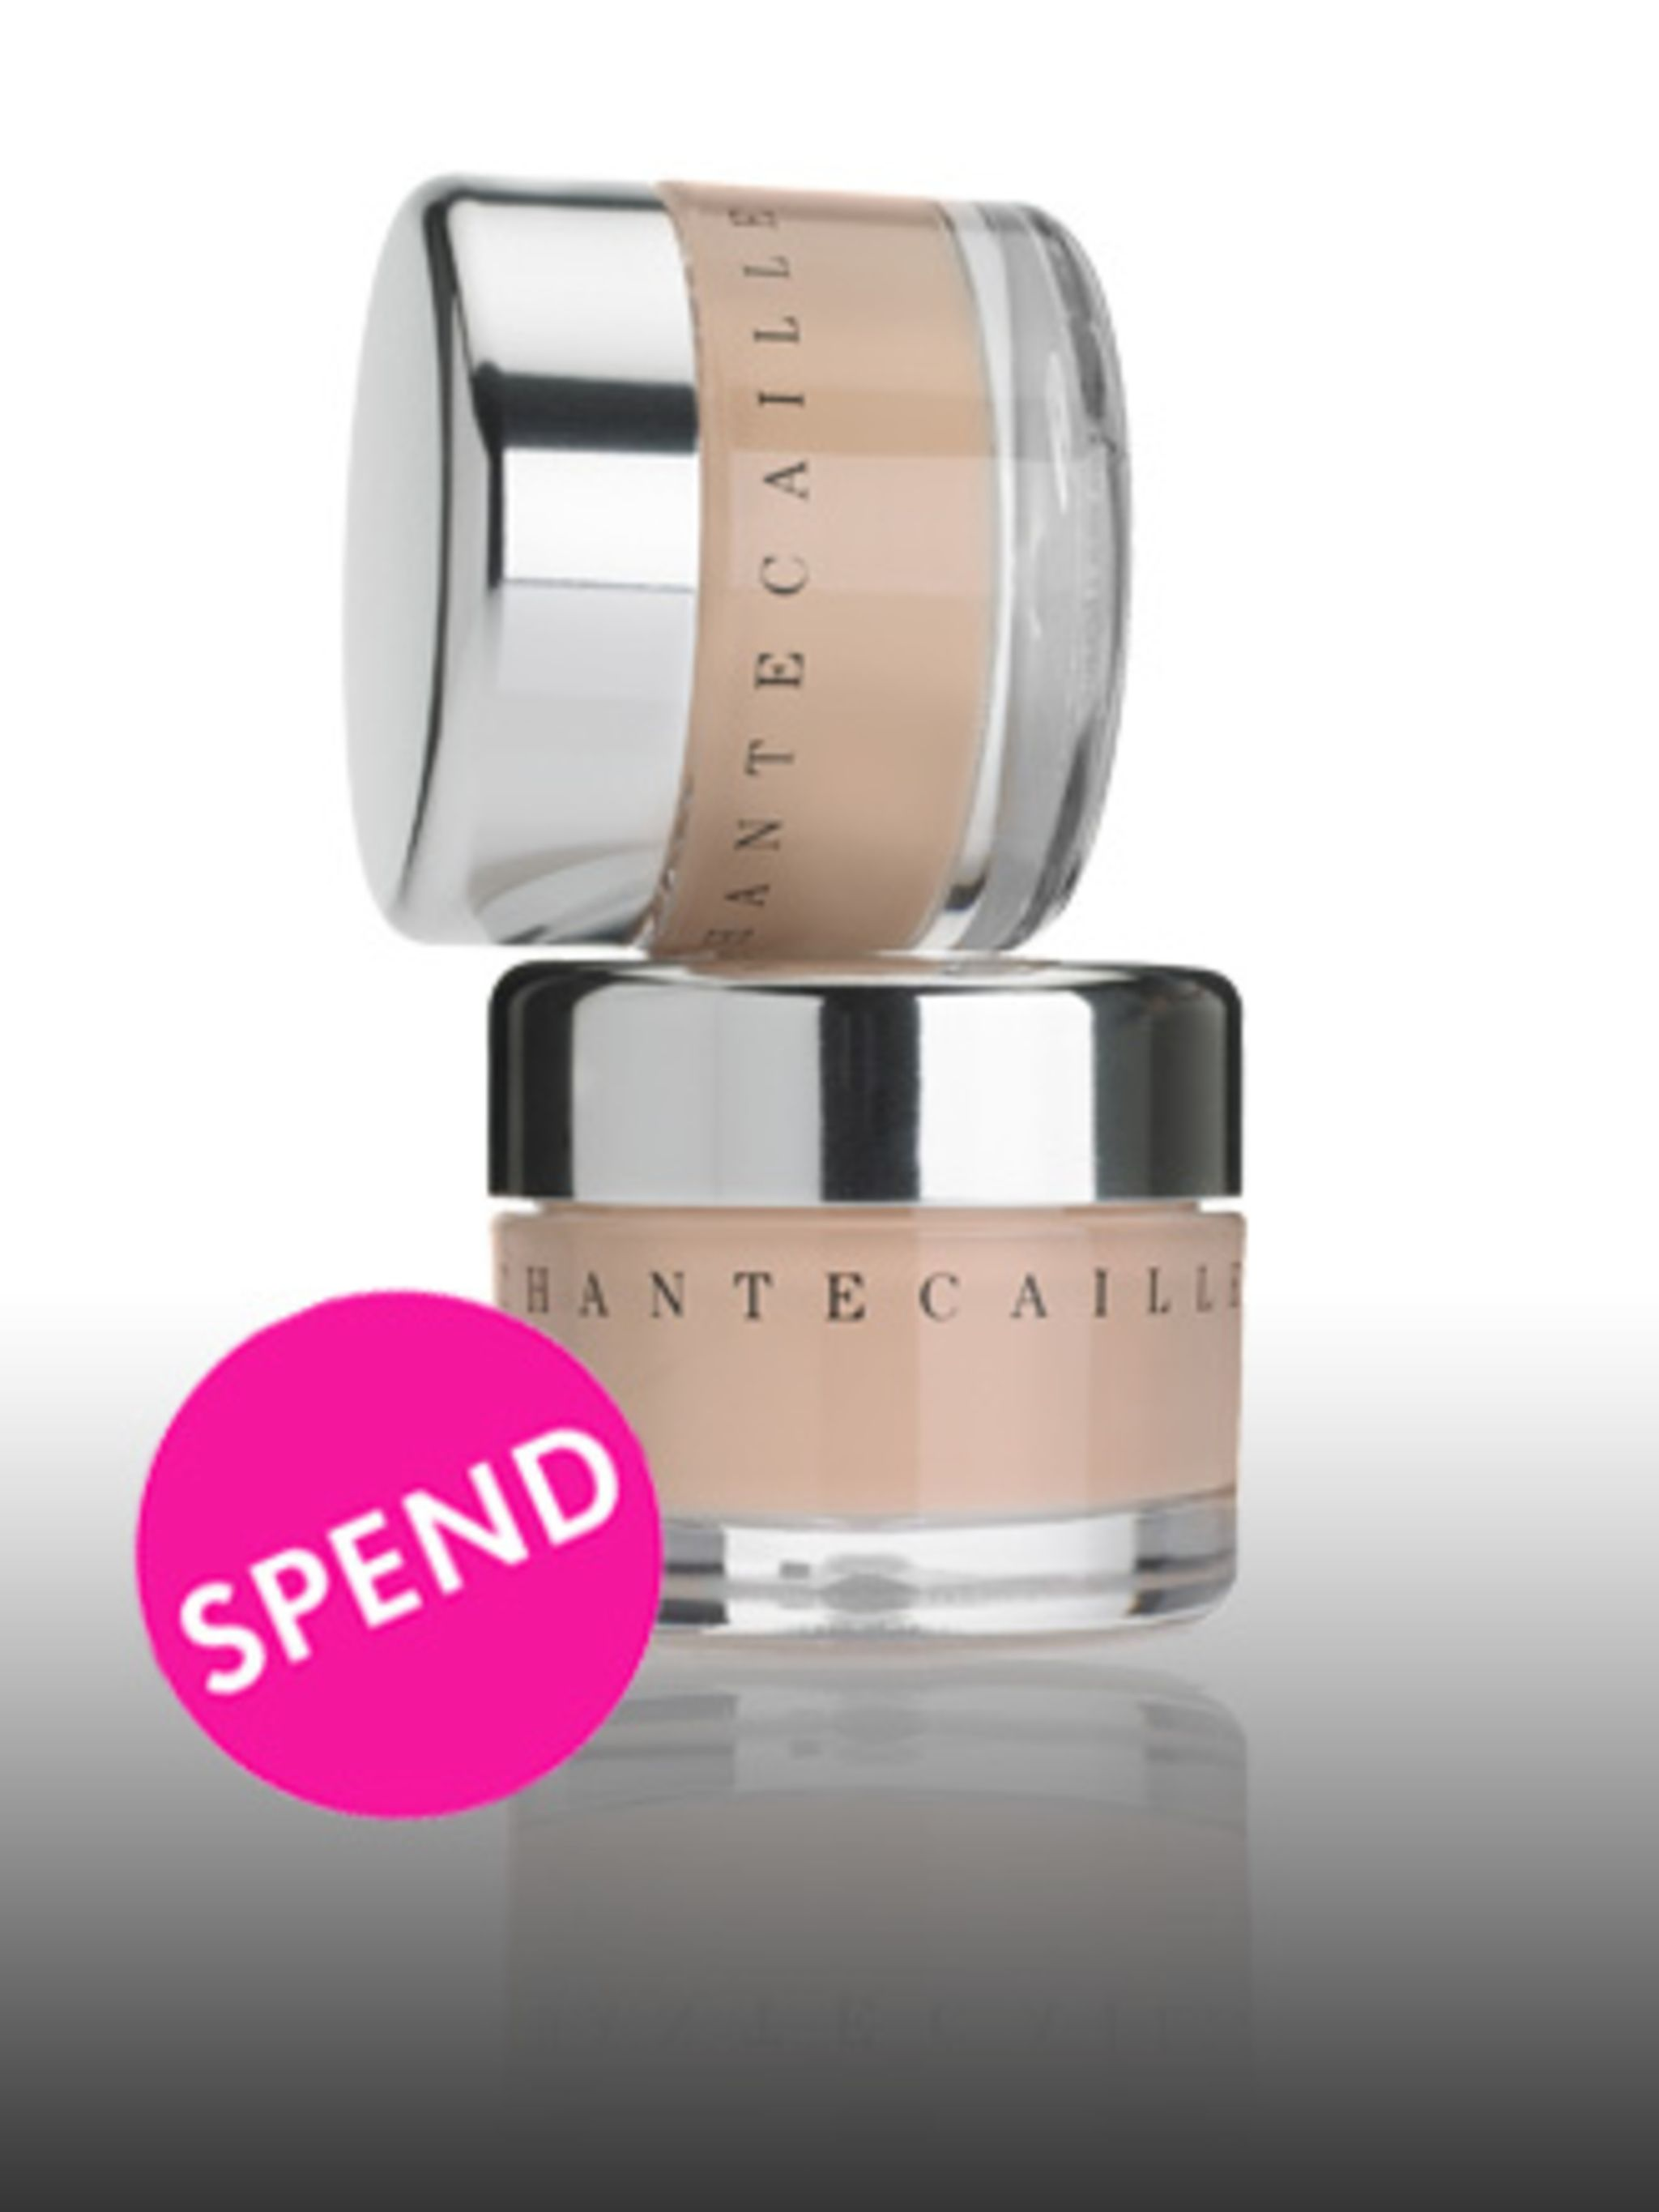 """<p>Future Skin, £49, by Chantecaille at <a href=""""http://www.spacenk.co.uk/ProductDetails.aspx?pid=0037%2F2672&cid=PCOLOURCFACEFOUND&language=en-GB"""">Space.NK</a> </p><p>Future Skin is a miracle in a pot and the flawless base it creates means it's w"""